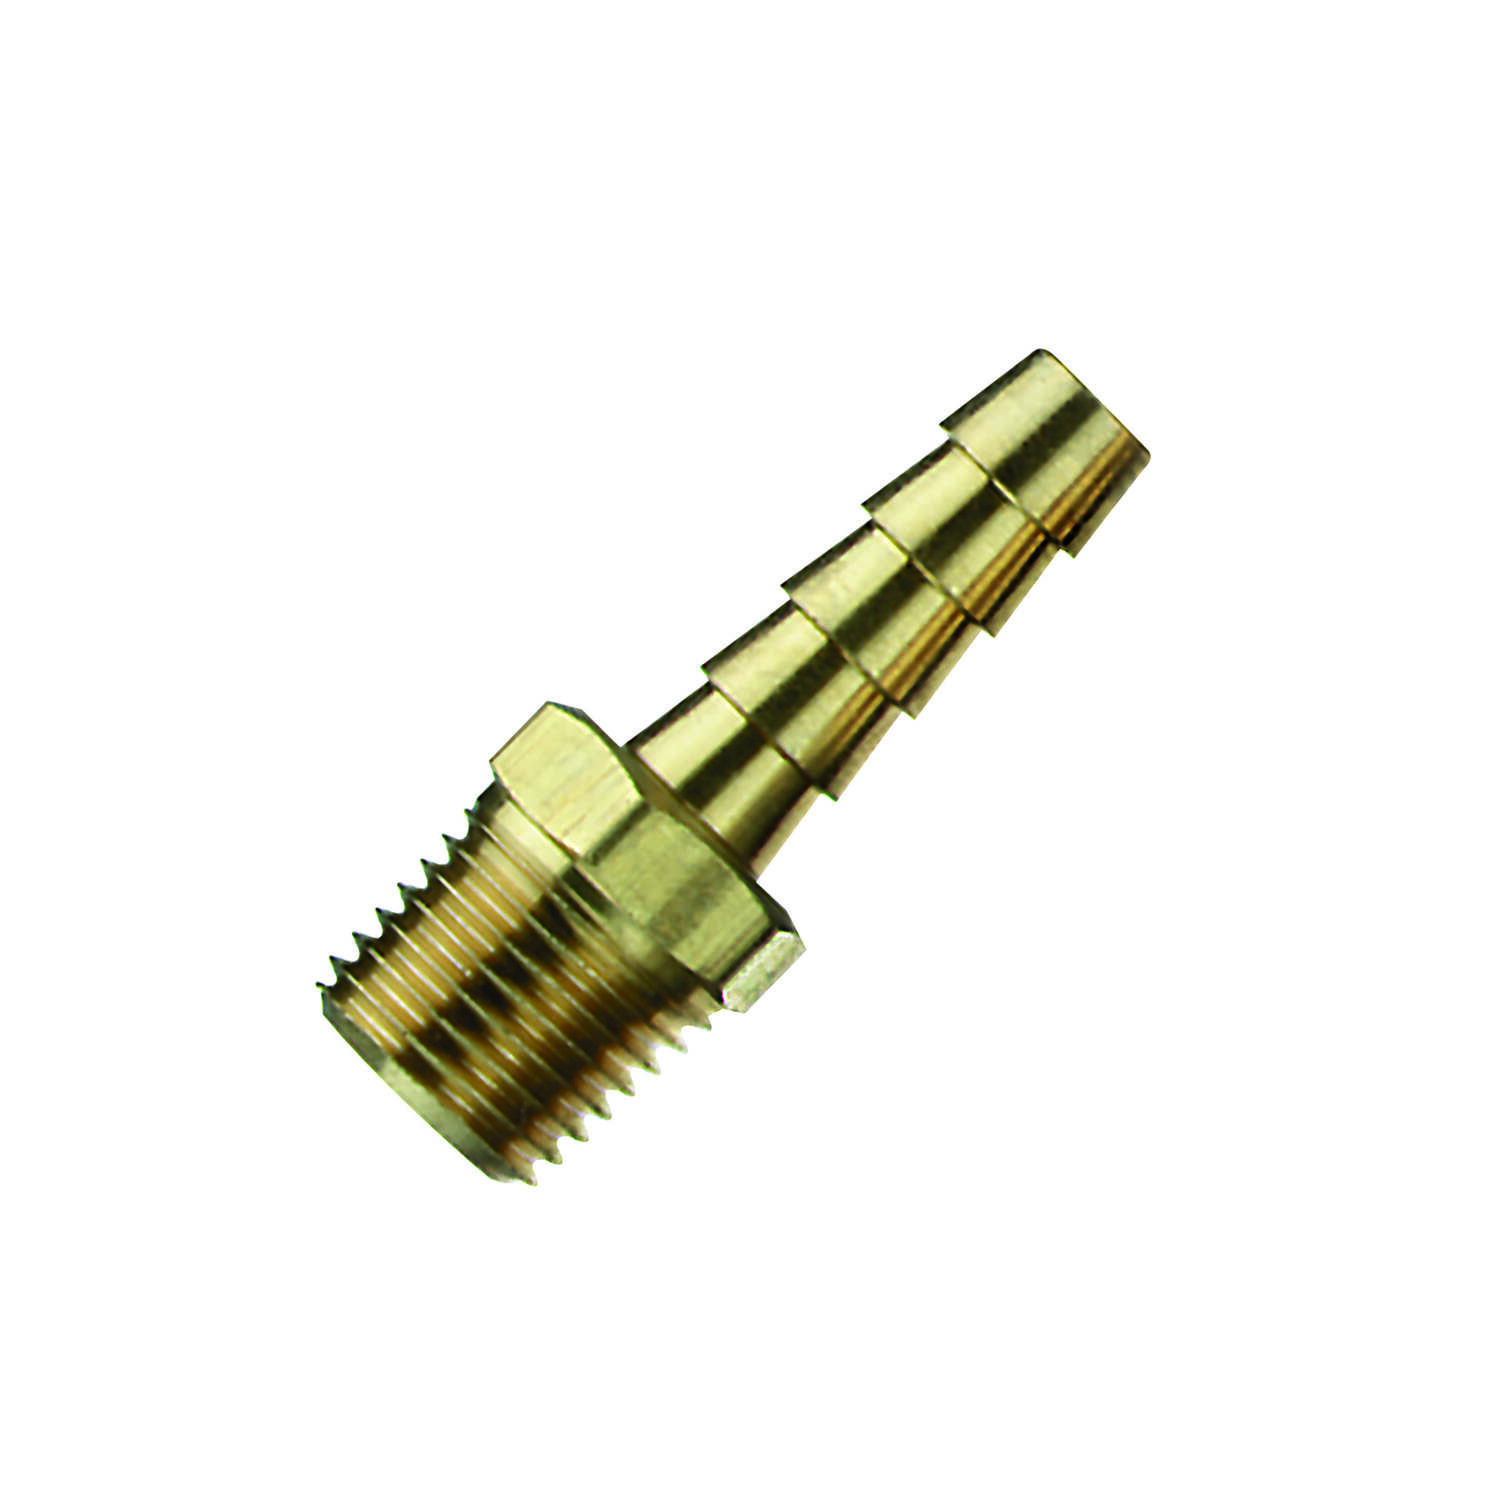 Tru-Flate  Brass  Barb Hose Fitting  3/8 in. I.D. Hose x 3/8  3/8 in. Male  NPT   3/8 in. 1 pc. Male